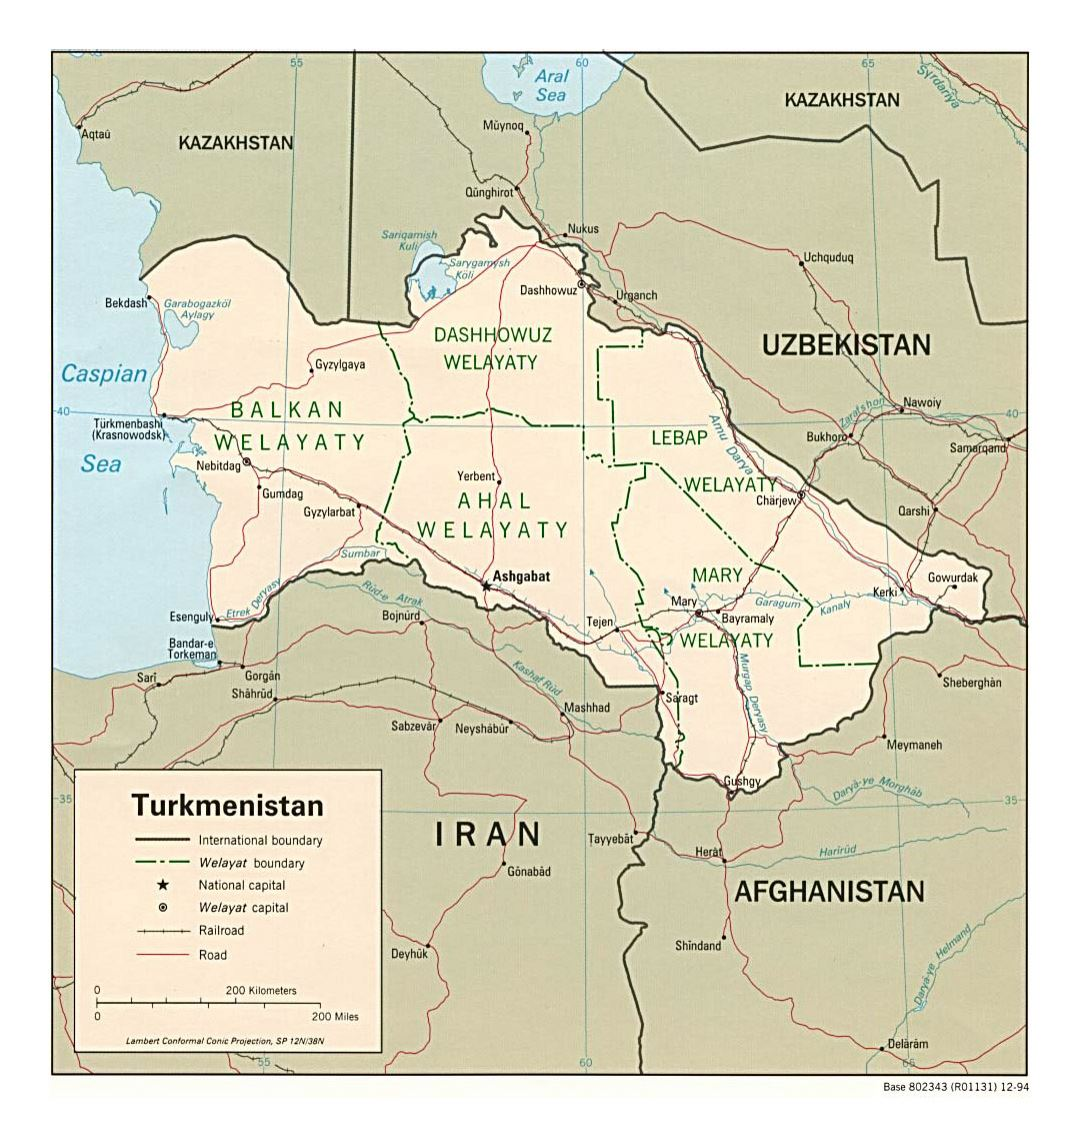 Detailed political and administrative map of Turkmenistan with roads, railroads and major cities - 1994